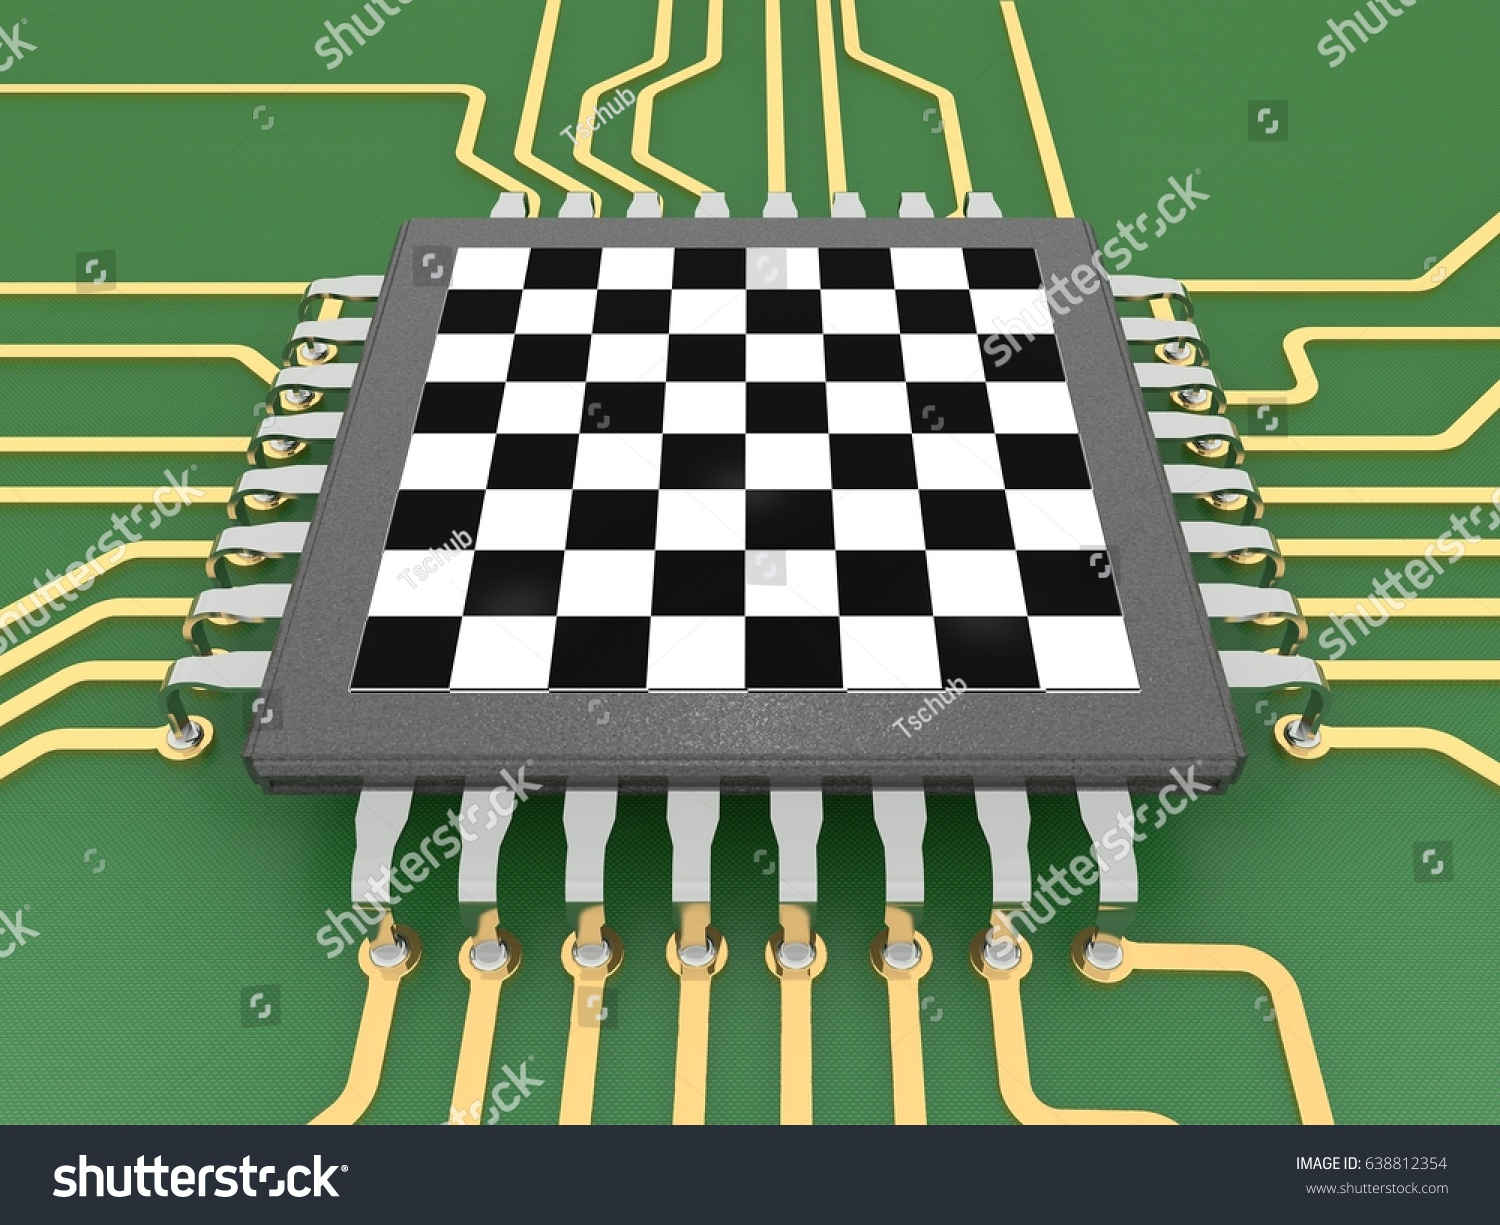 Royalty Free Stock Illustration Of Image Processor Form Chessboard Circuit Board Games An In The A On With Conductors